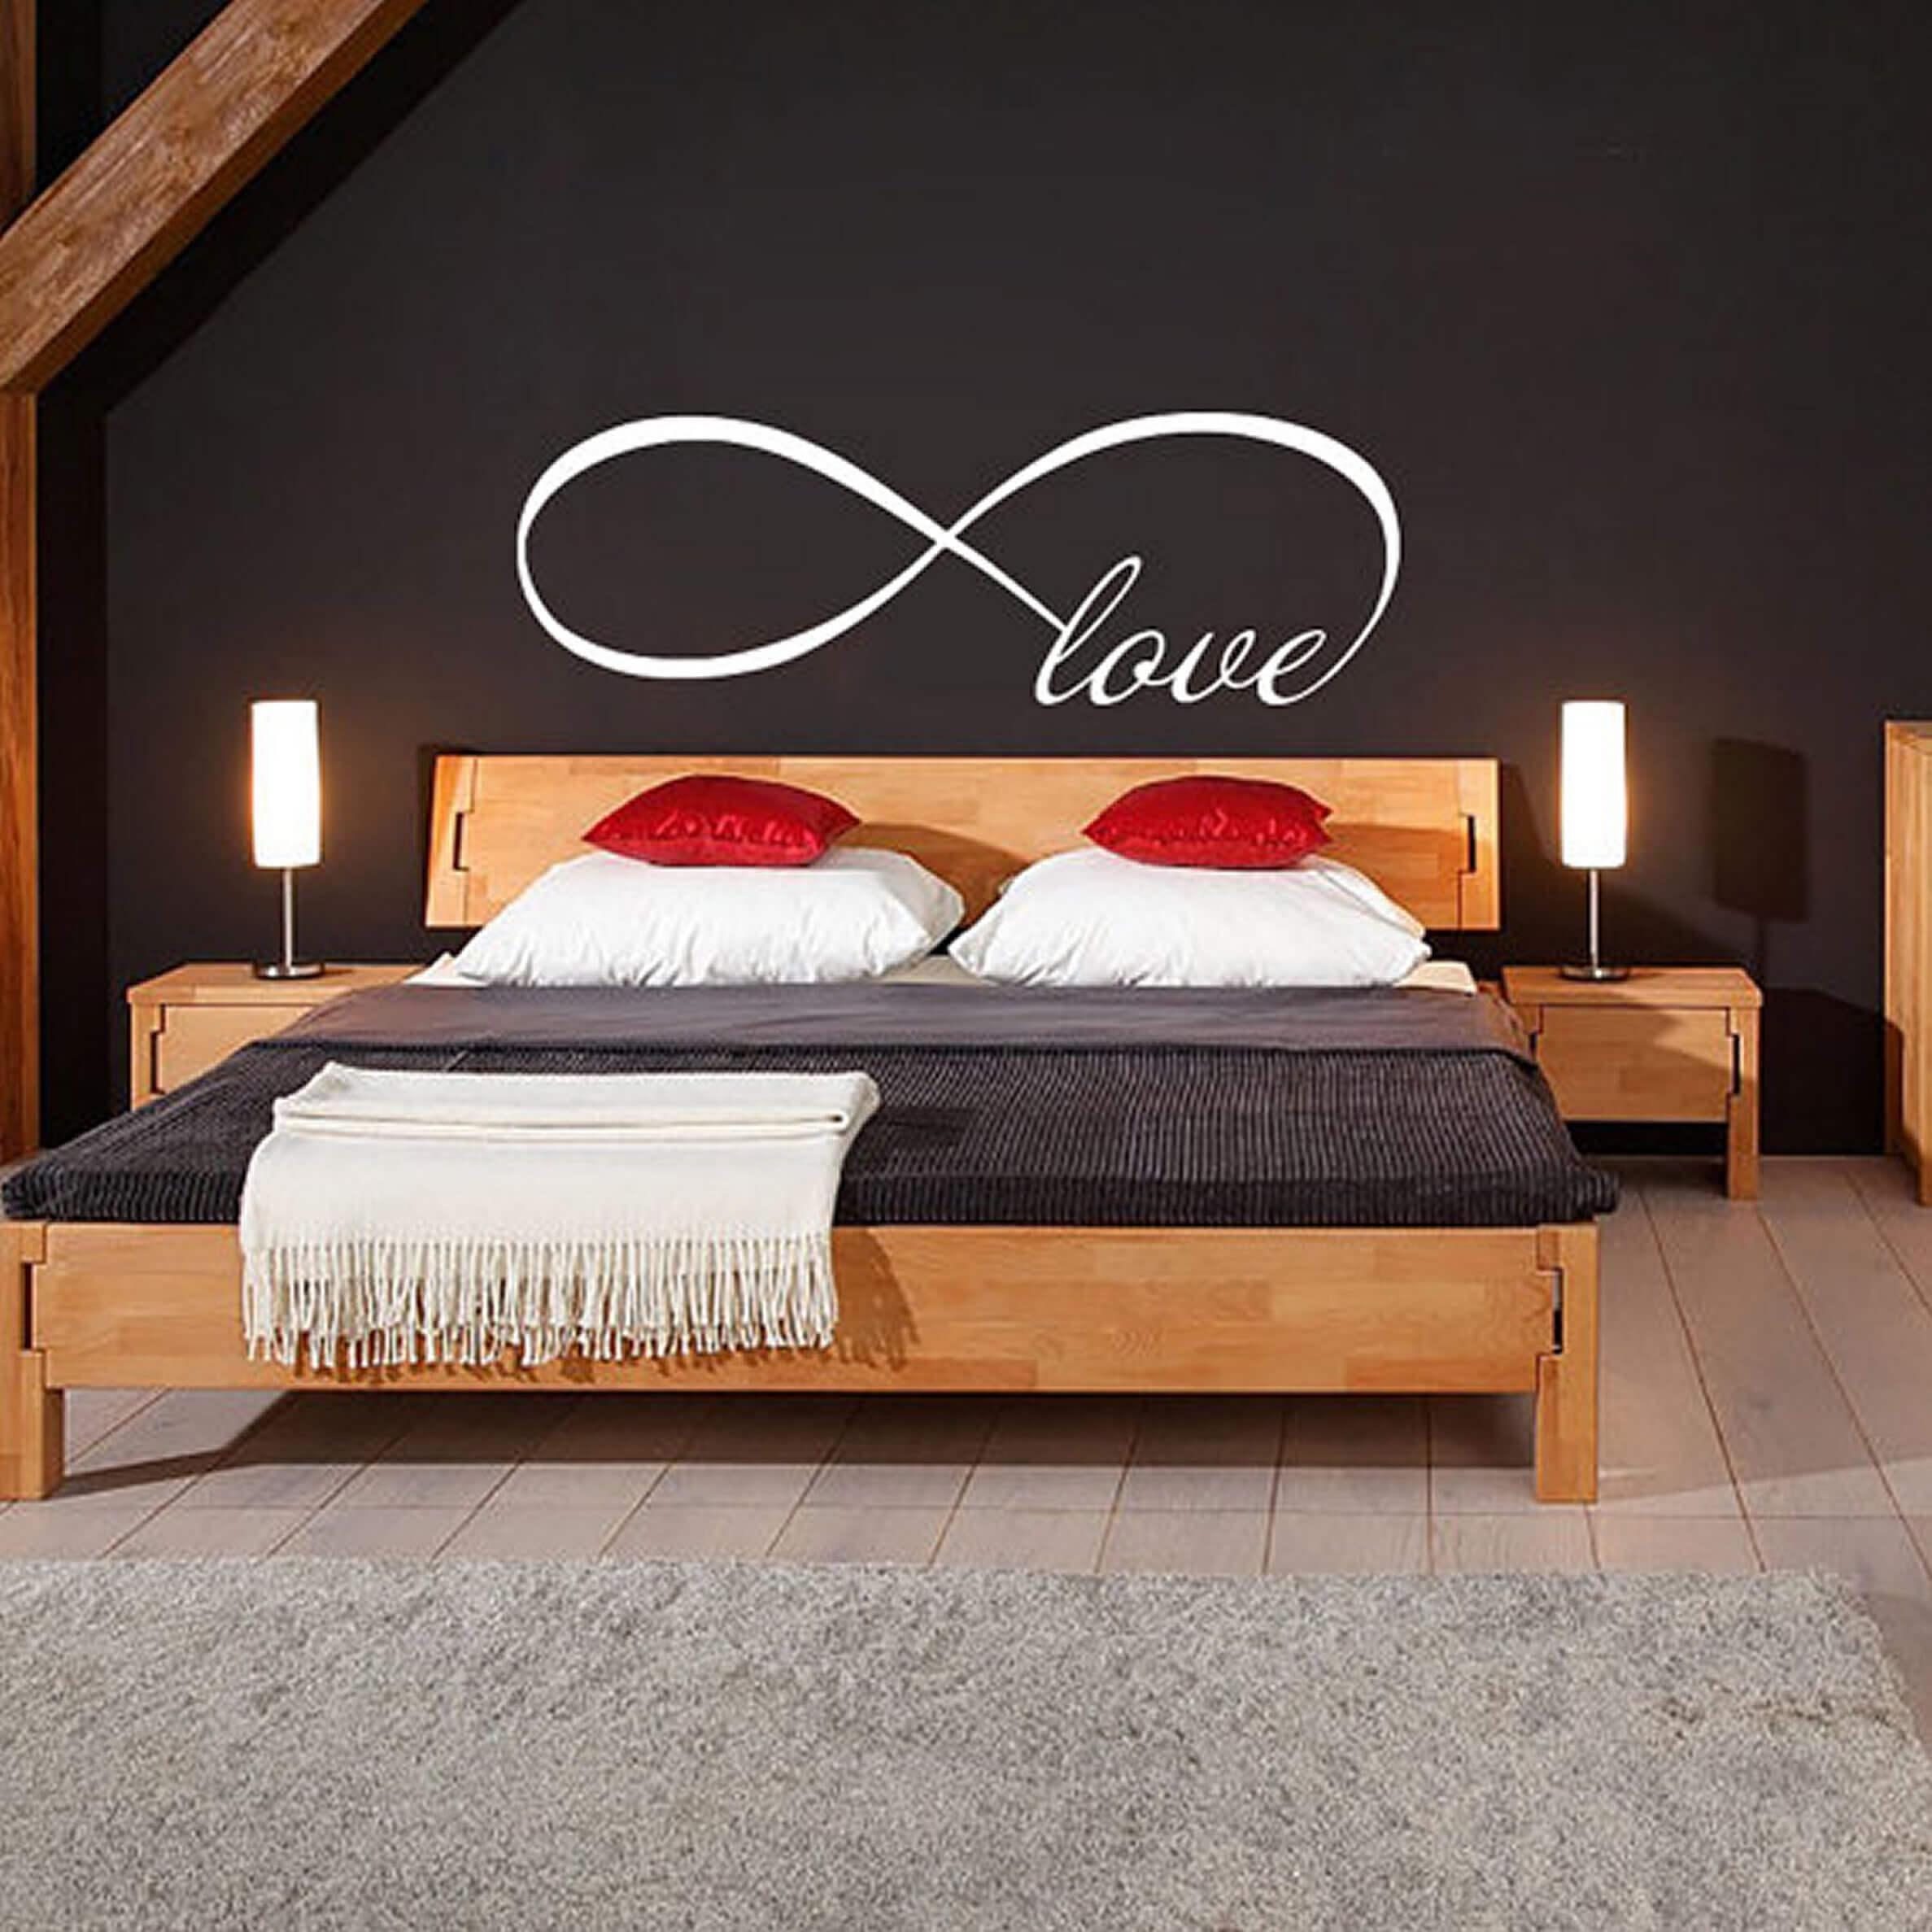 Wall Decals : Beautiful Wall Decals Love 102 Wall Stickers Love Inside Kohls Wall Decals (View 18 of 20)